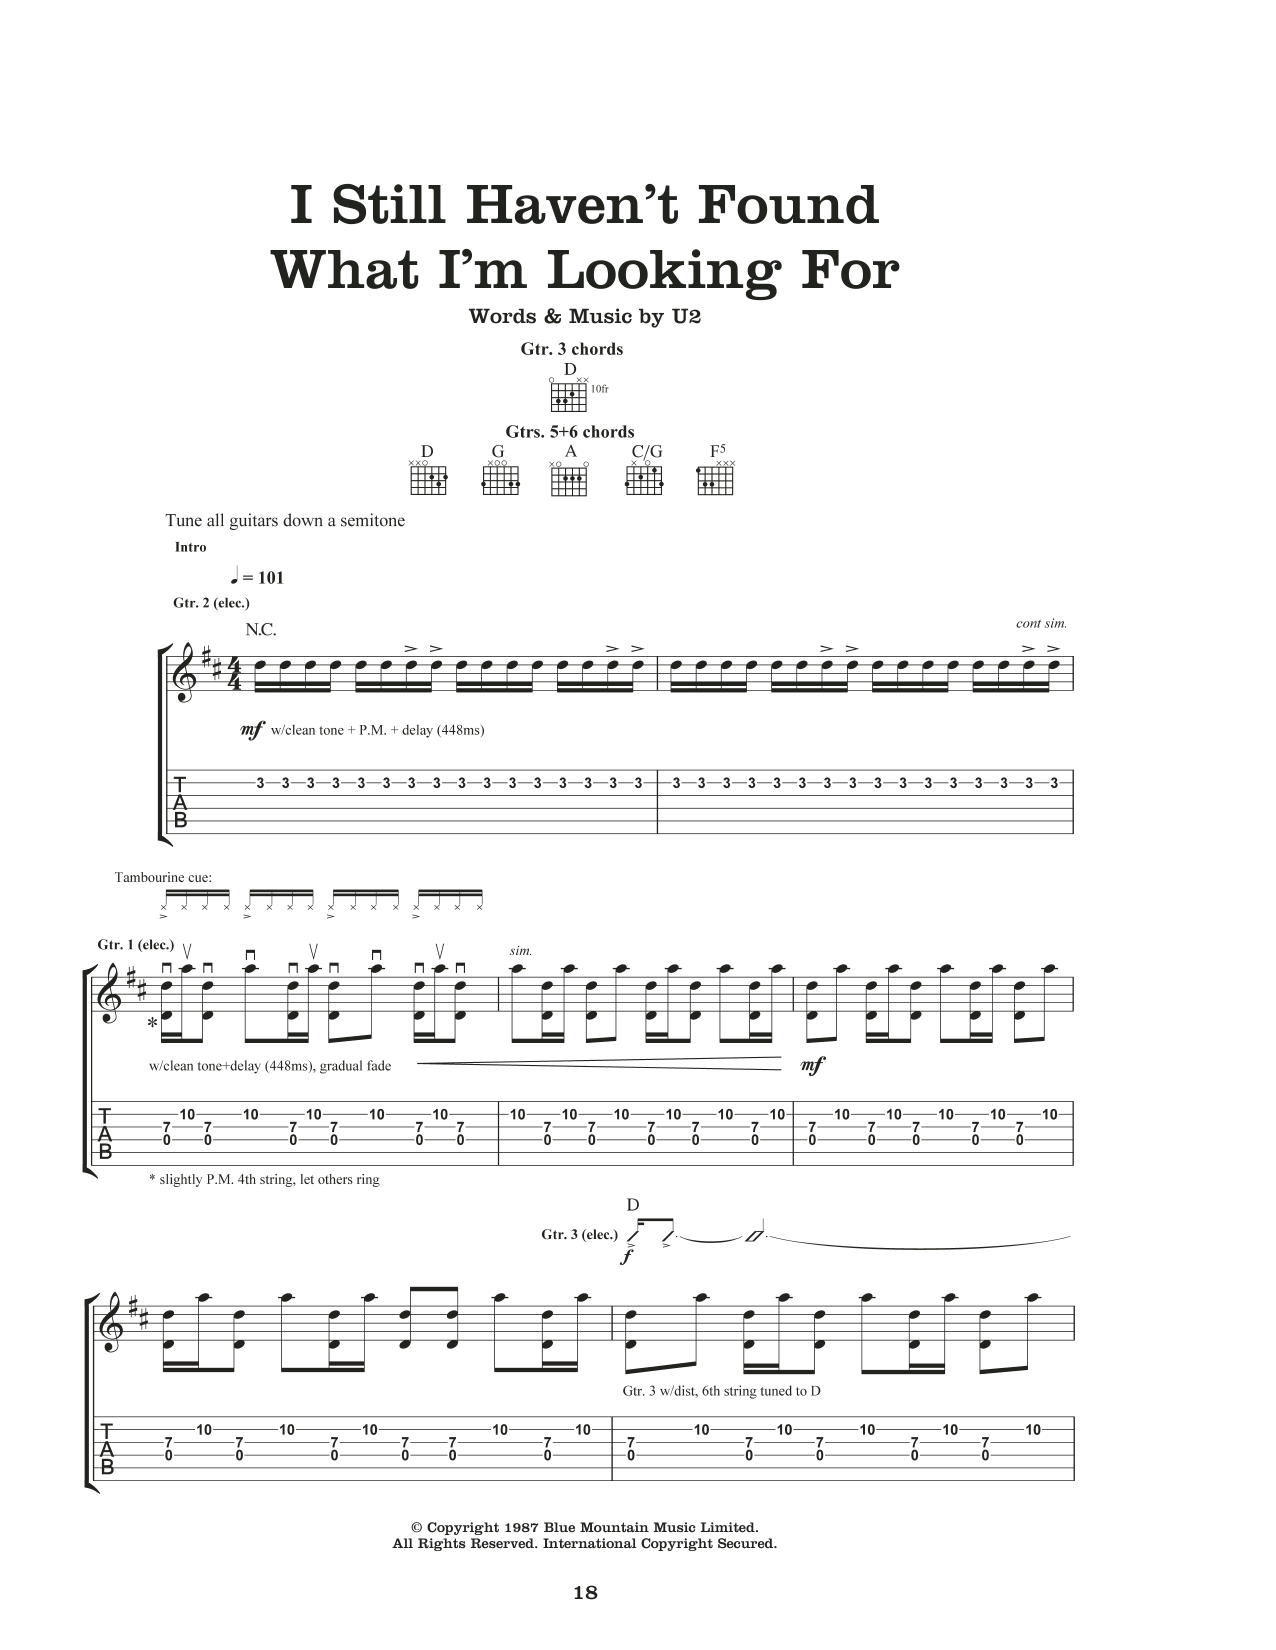 I Still Haven't Found What I'm Looking For Sheet Music